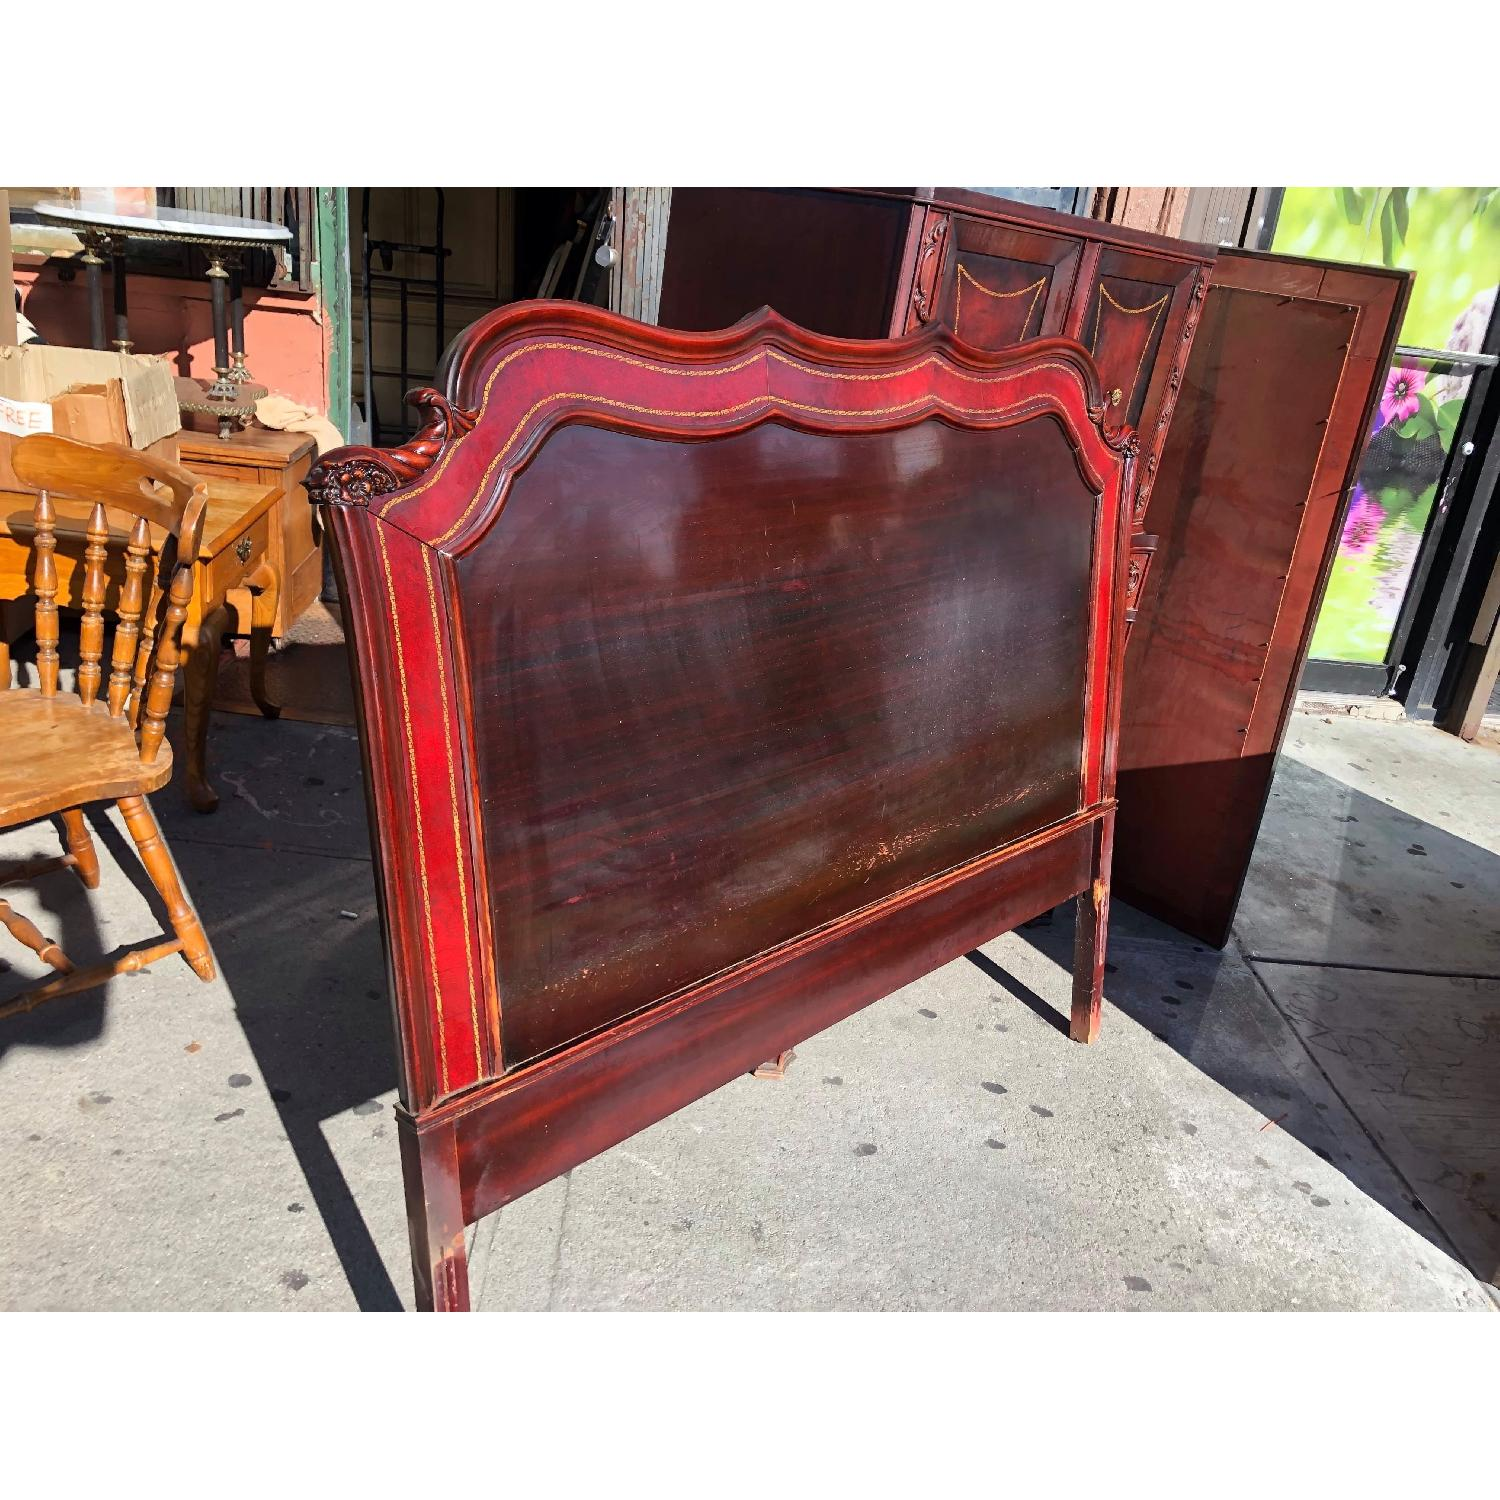 Antique 1930s Cherry Wood & Leather Full Size Headboard - image-3